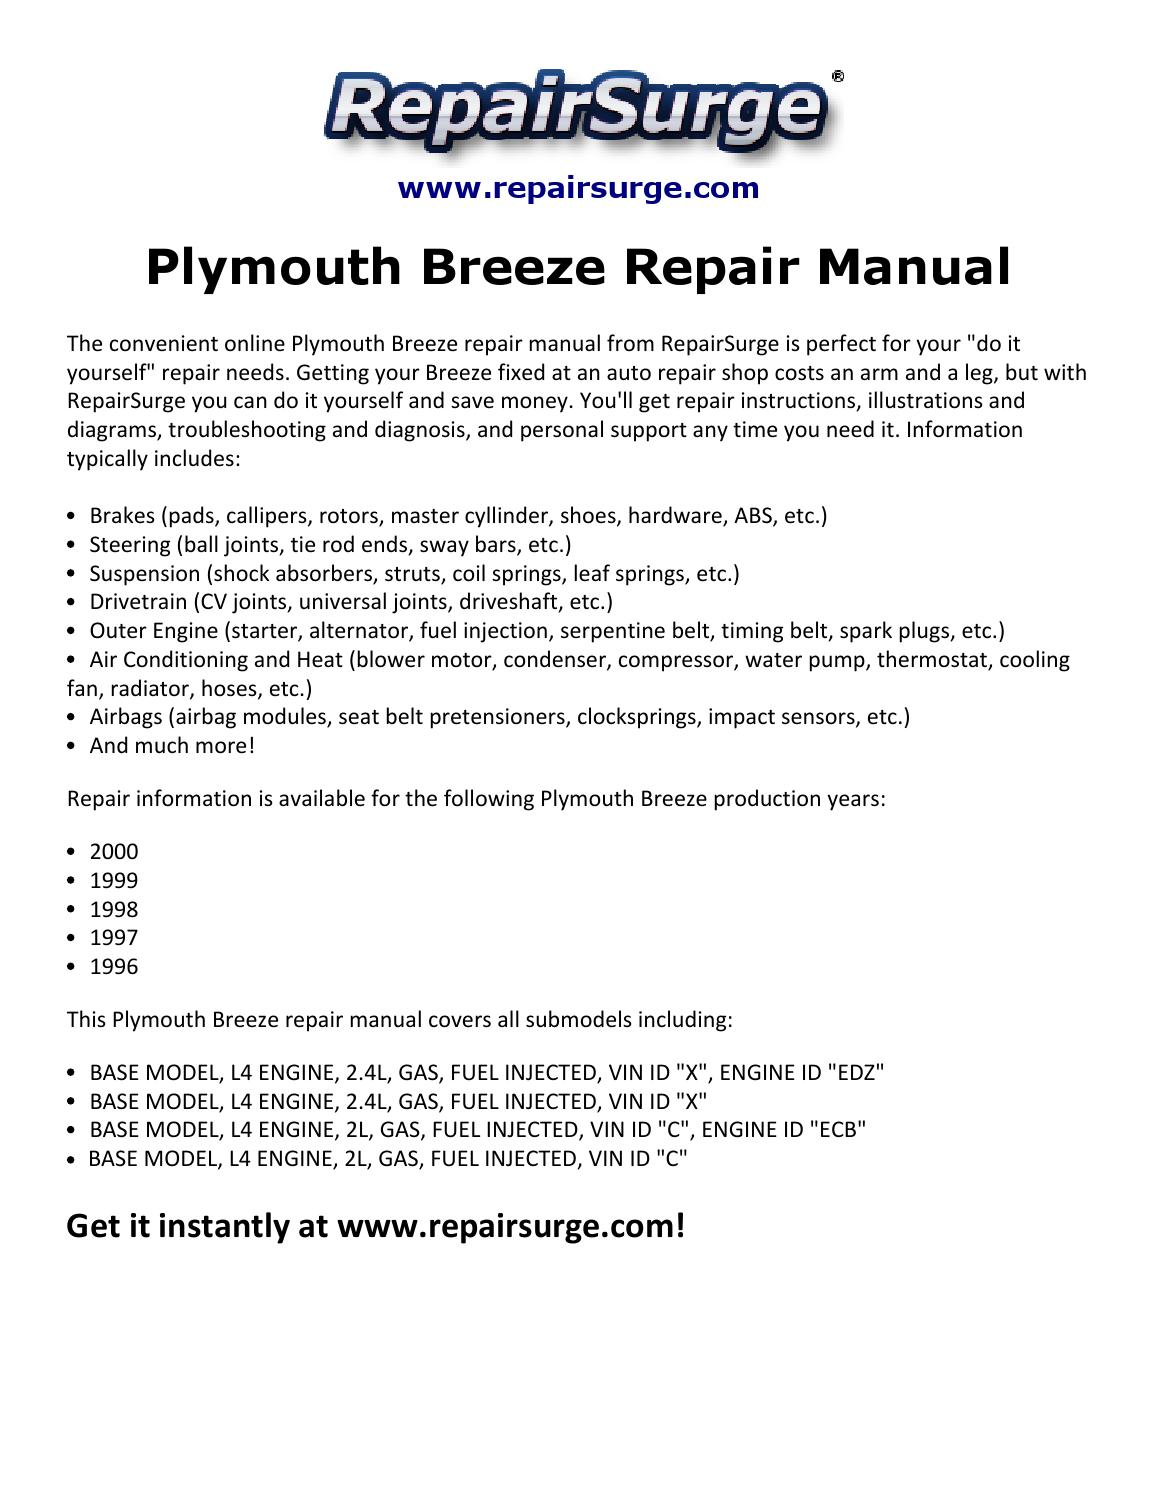 1999 Plymouth Breeze Radiator Diagram Wiring Services 1998 Fuse Box Repair Manual 1996 2000 By David Williams Issuu Rh Com